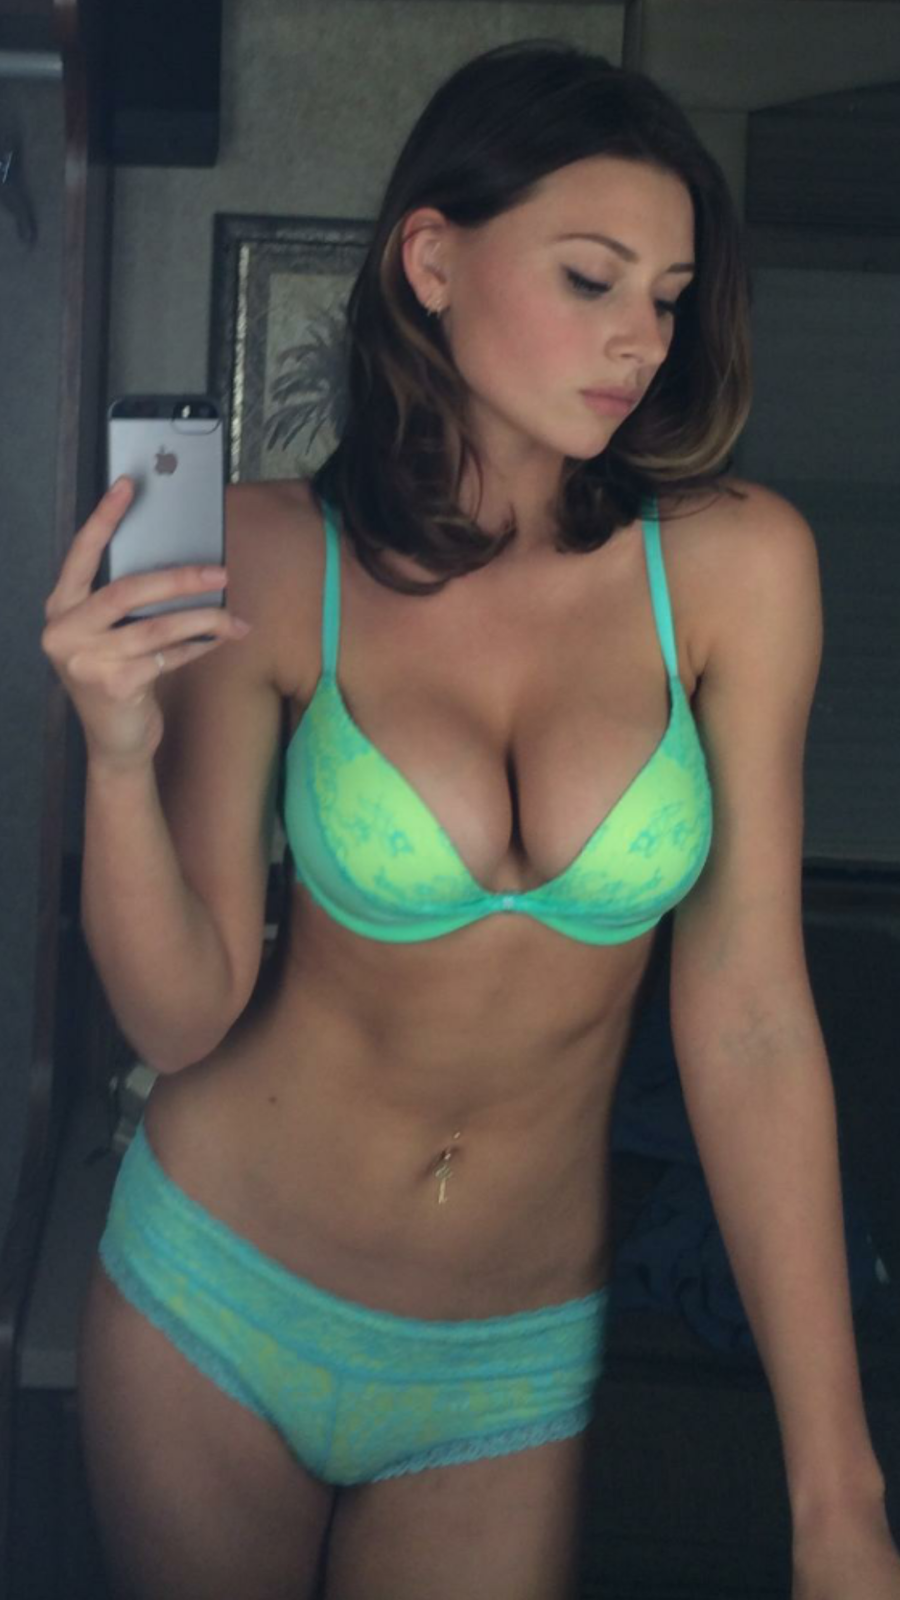 Selfie Alyson Michalka naked (48 foto and video), Tits, Sideboobs, Boobs, cleavage 2017